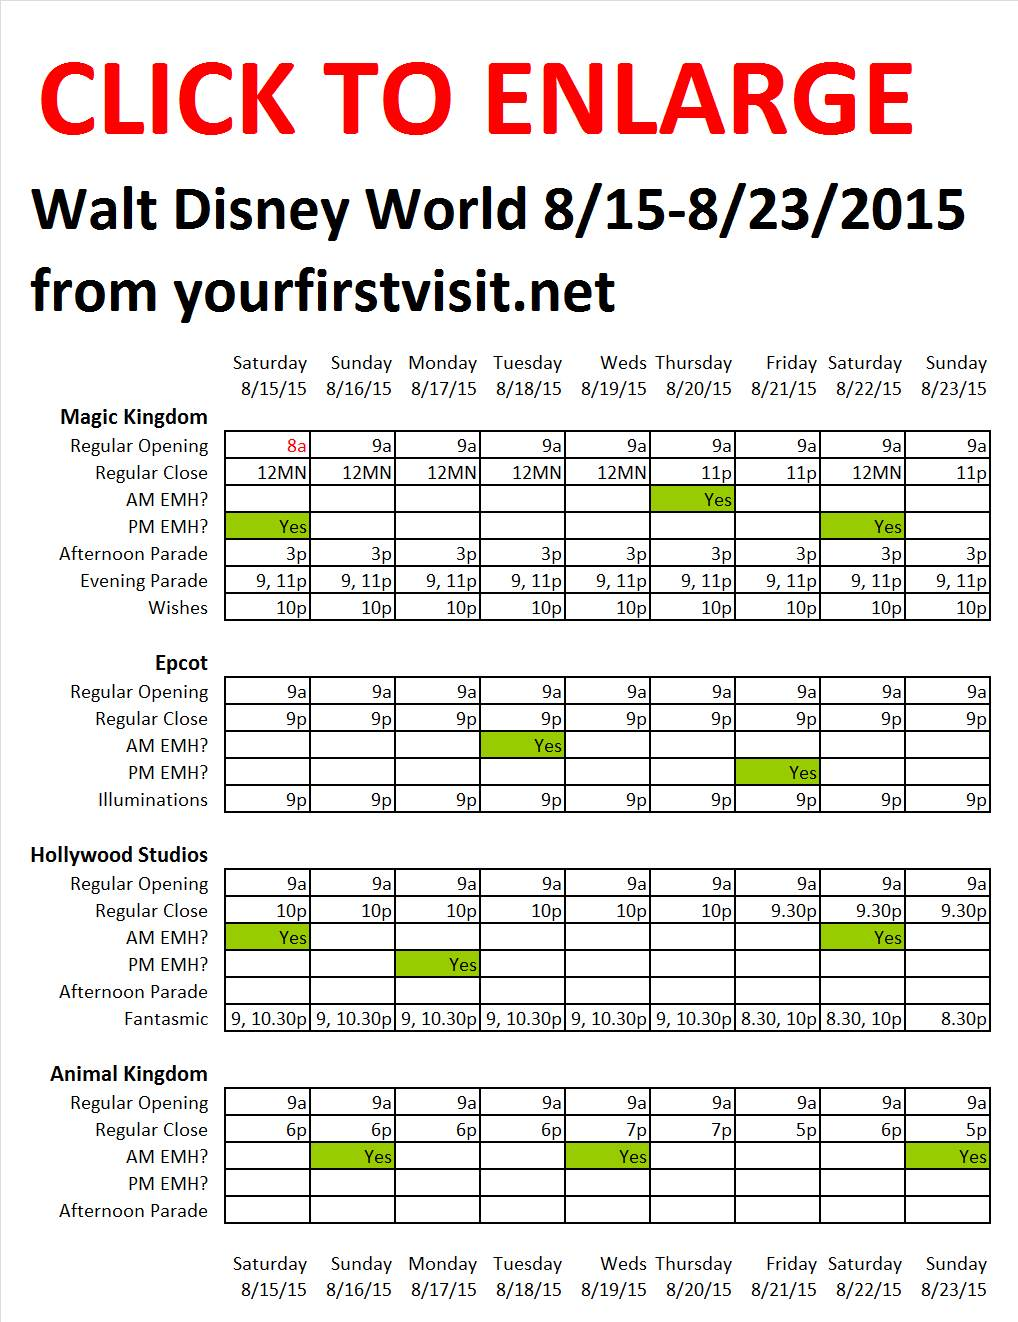 Disney World 8-15 to 8-23-2015 from yourfirstvisit.net